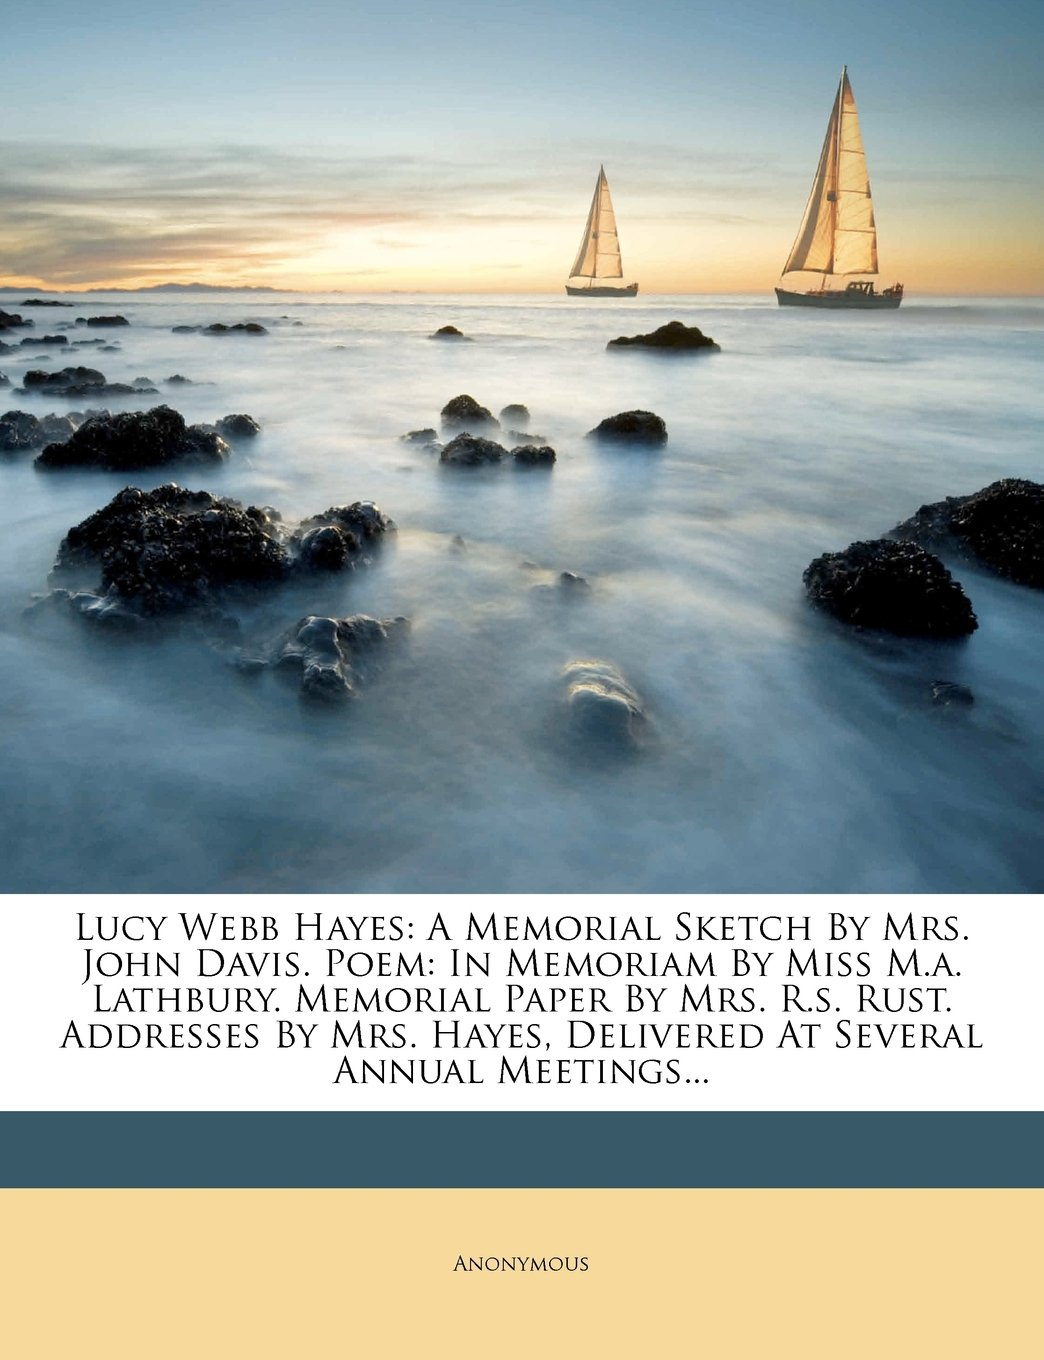 Lucy Webb Hayes: A Memorial Sketch By Mrs. John Davis. Poem: In Memoriam By Miss M.a. Lathbury. Memorial Paper By Mrs. R.s. Rust. Addresses By Mrs. Hayes, Delivered At Several Annual Meetings... ebook